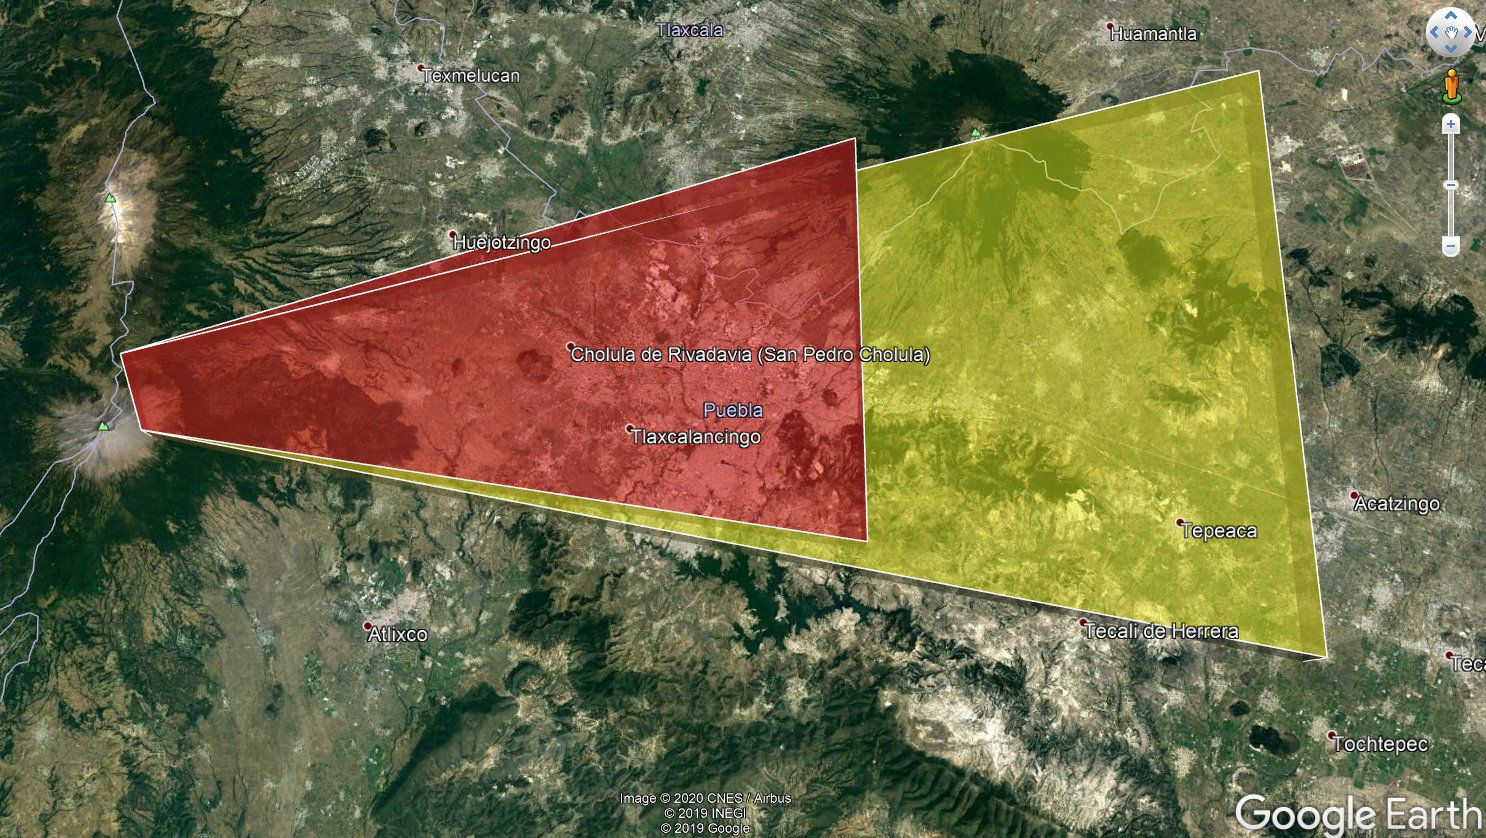 Continuous ash emissions from Popocatépetl heading towards Puebla. Dispersion forecast: observed (area in red) and prognosis at 6 hours (area in yellow). - Doc. VAAC-NOAA. / Skyalert